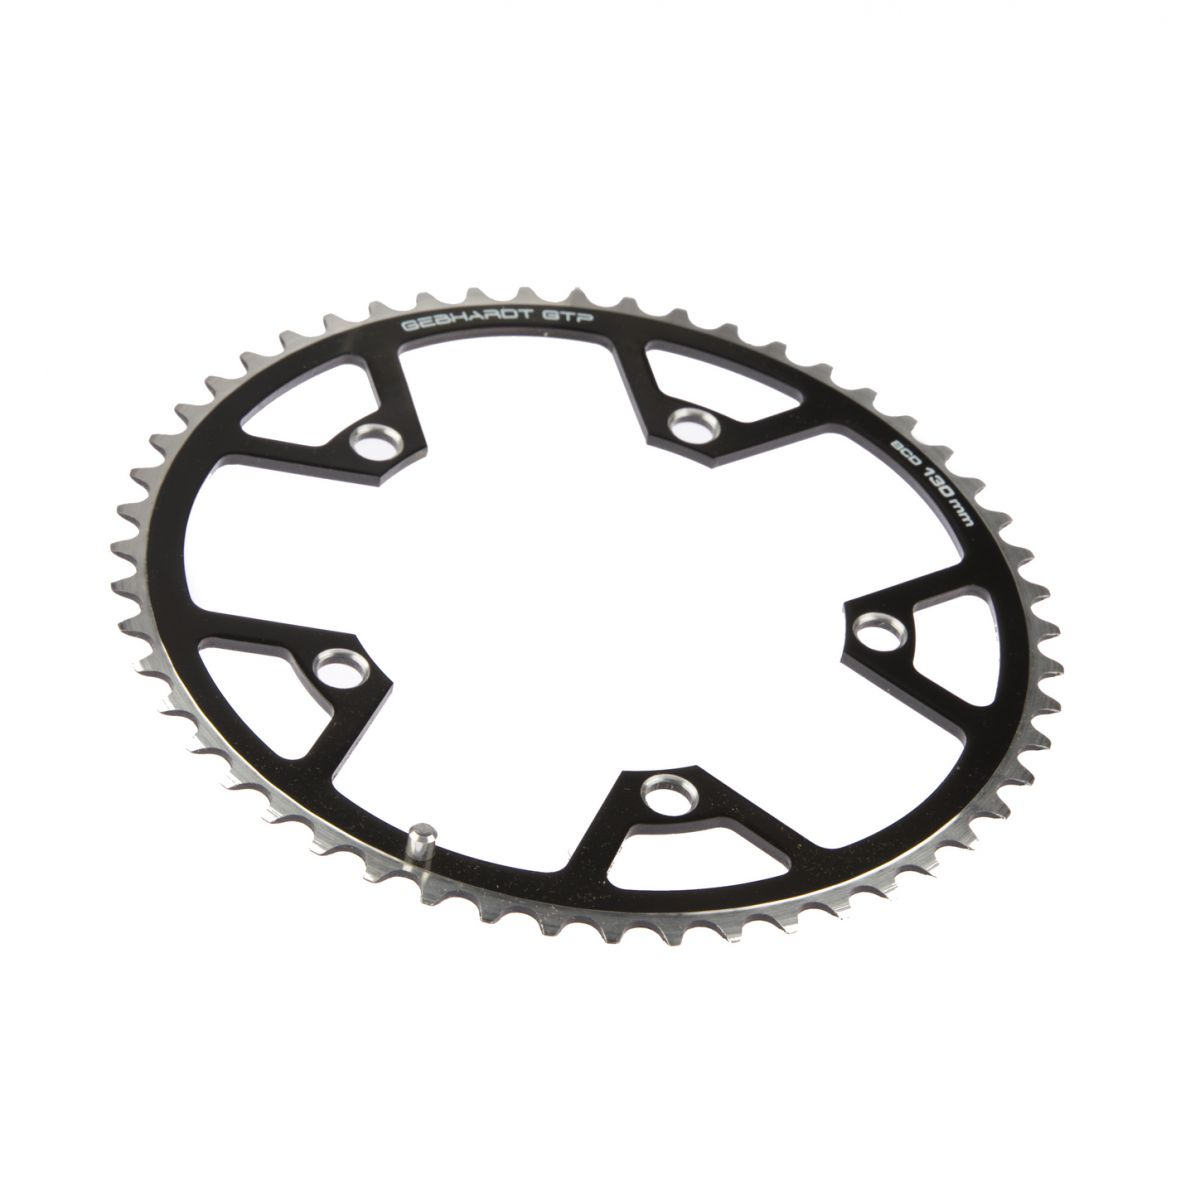 gebhardt chainring classic bcd 135 mm 5hole 46t black